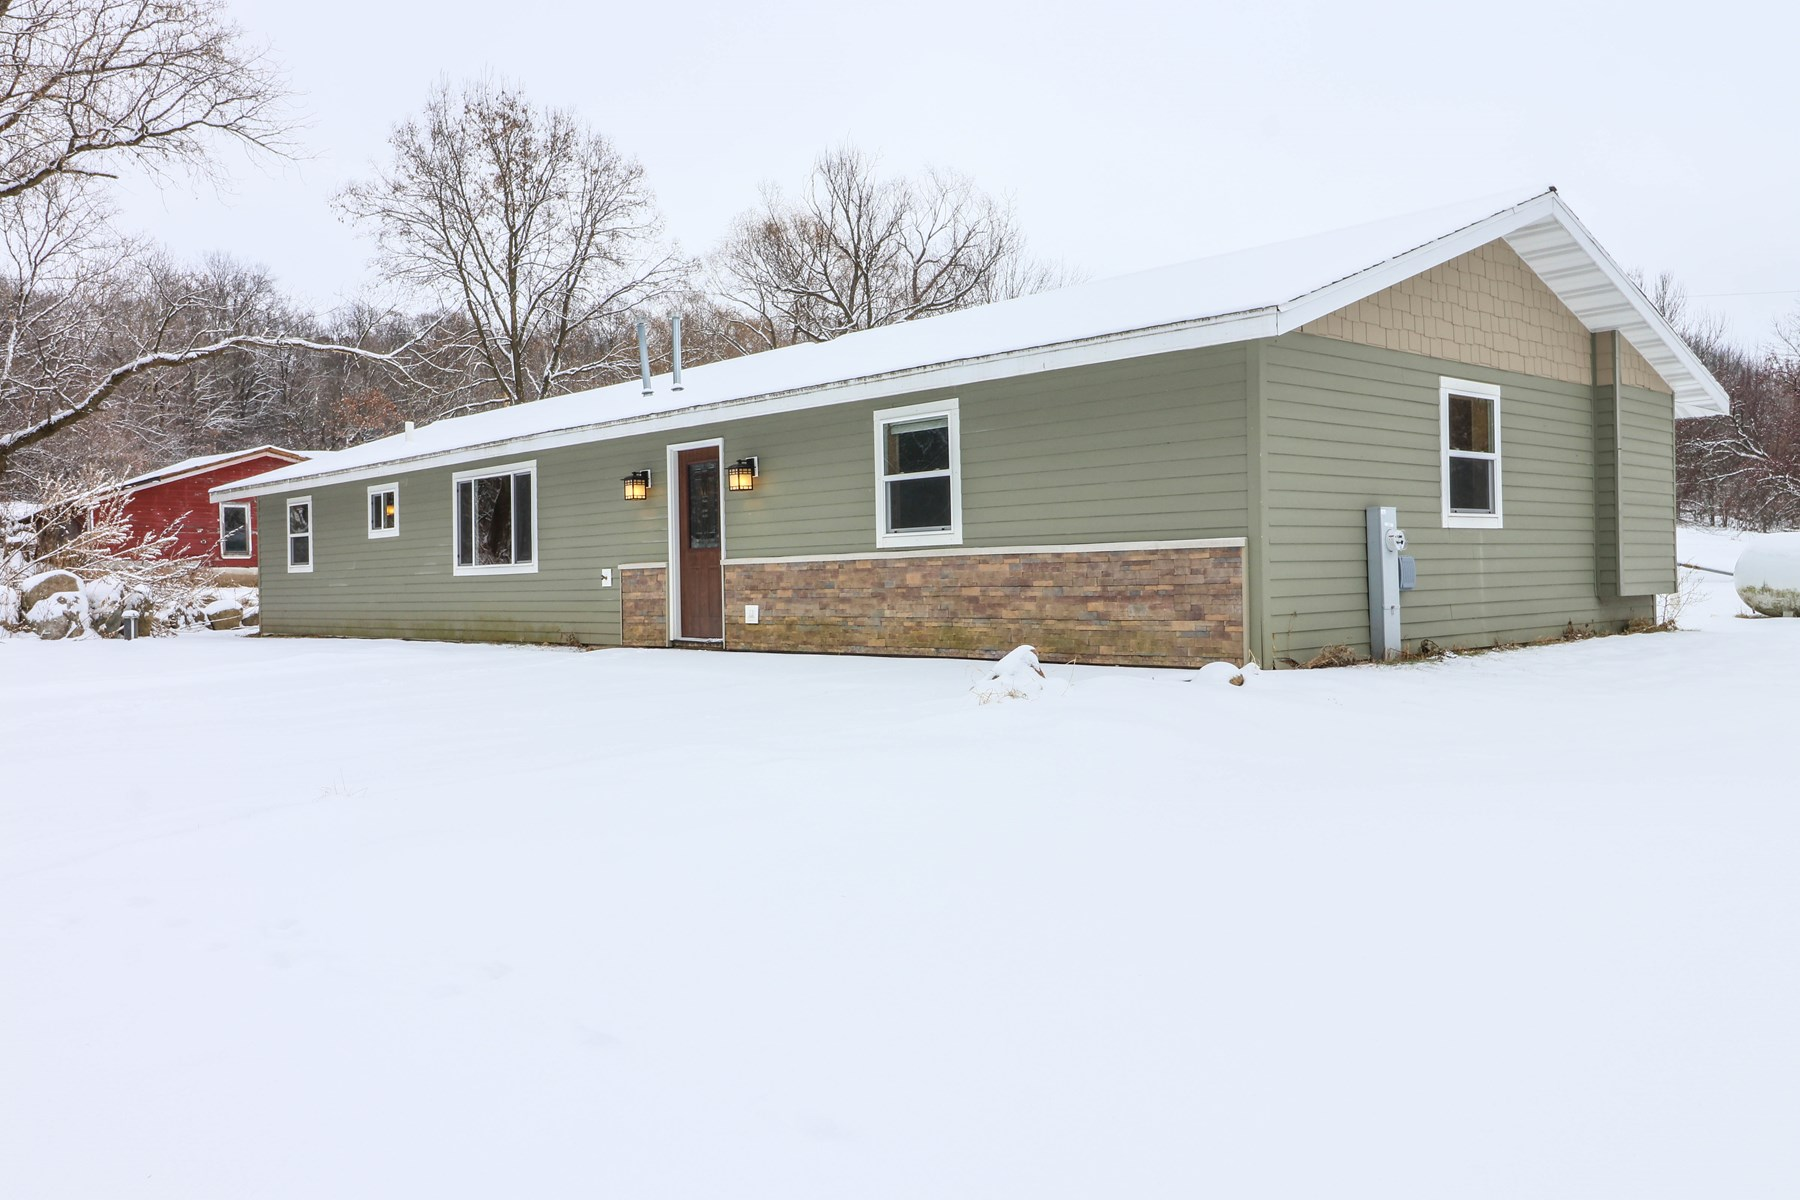 Country Home for sale in Town of Waupaca, WI